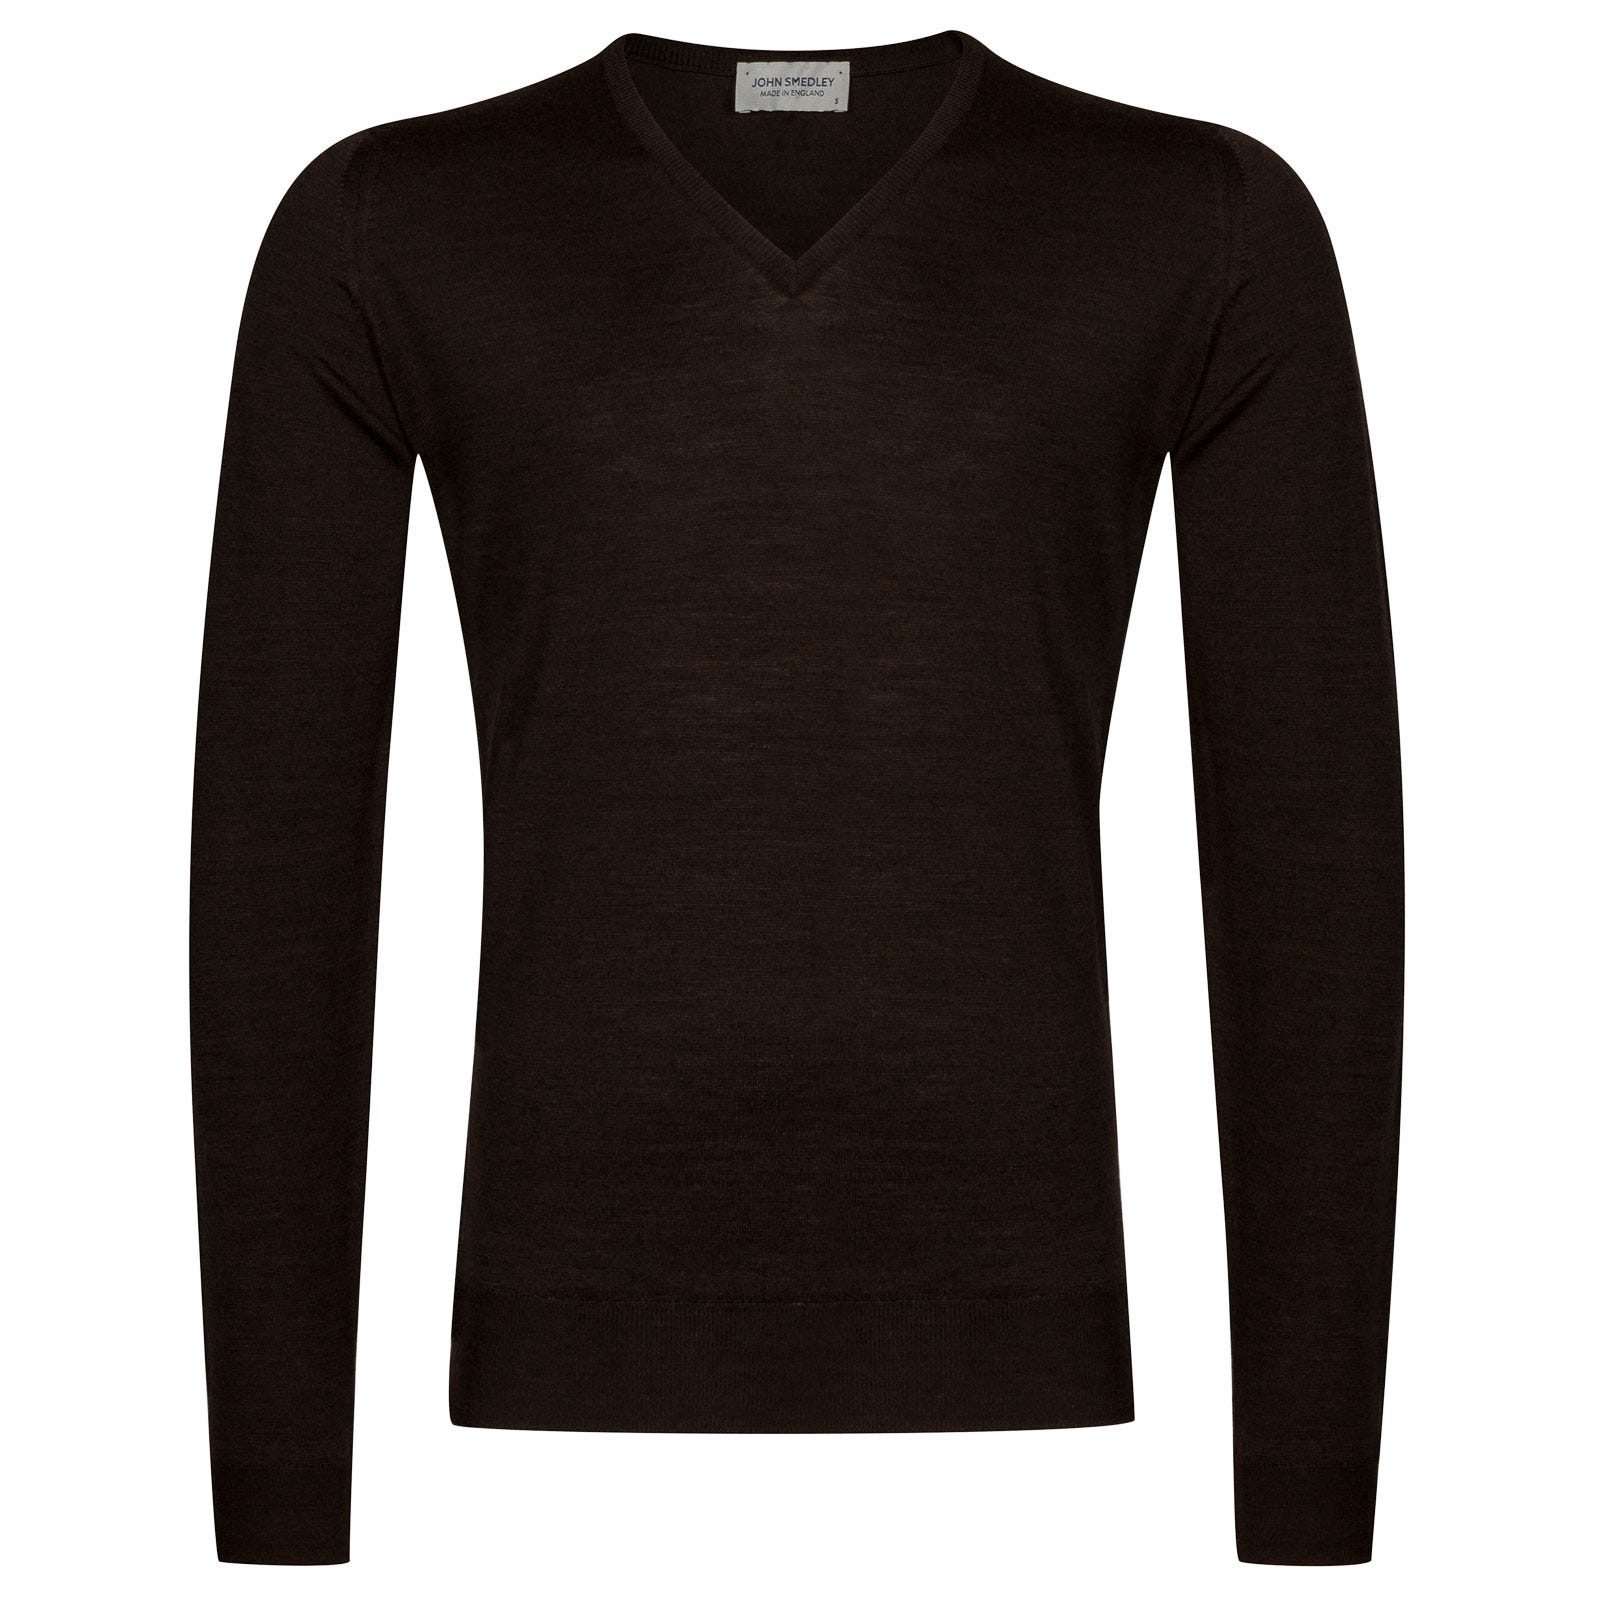 John Smedley Blenheim Merino Wool Pullover in Chestnut-XL